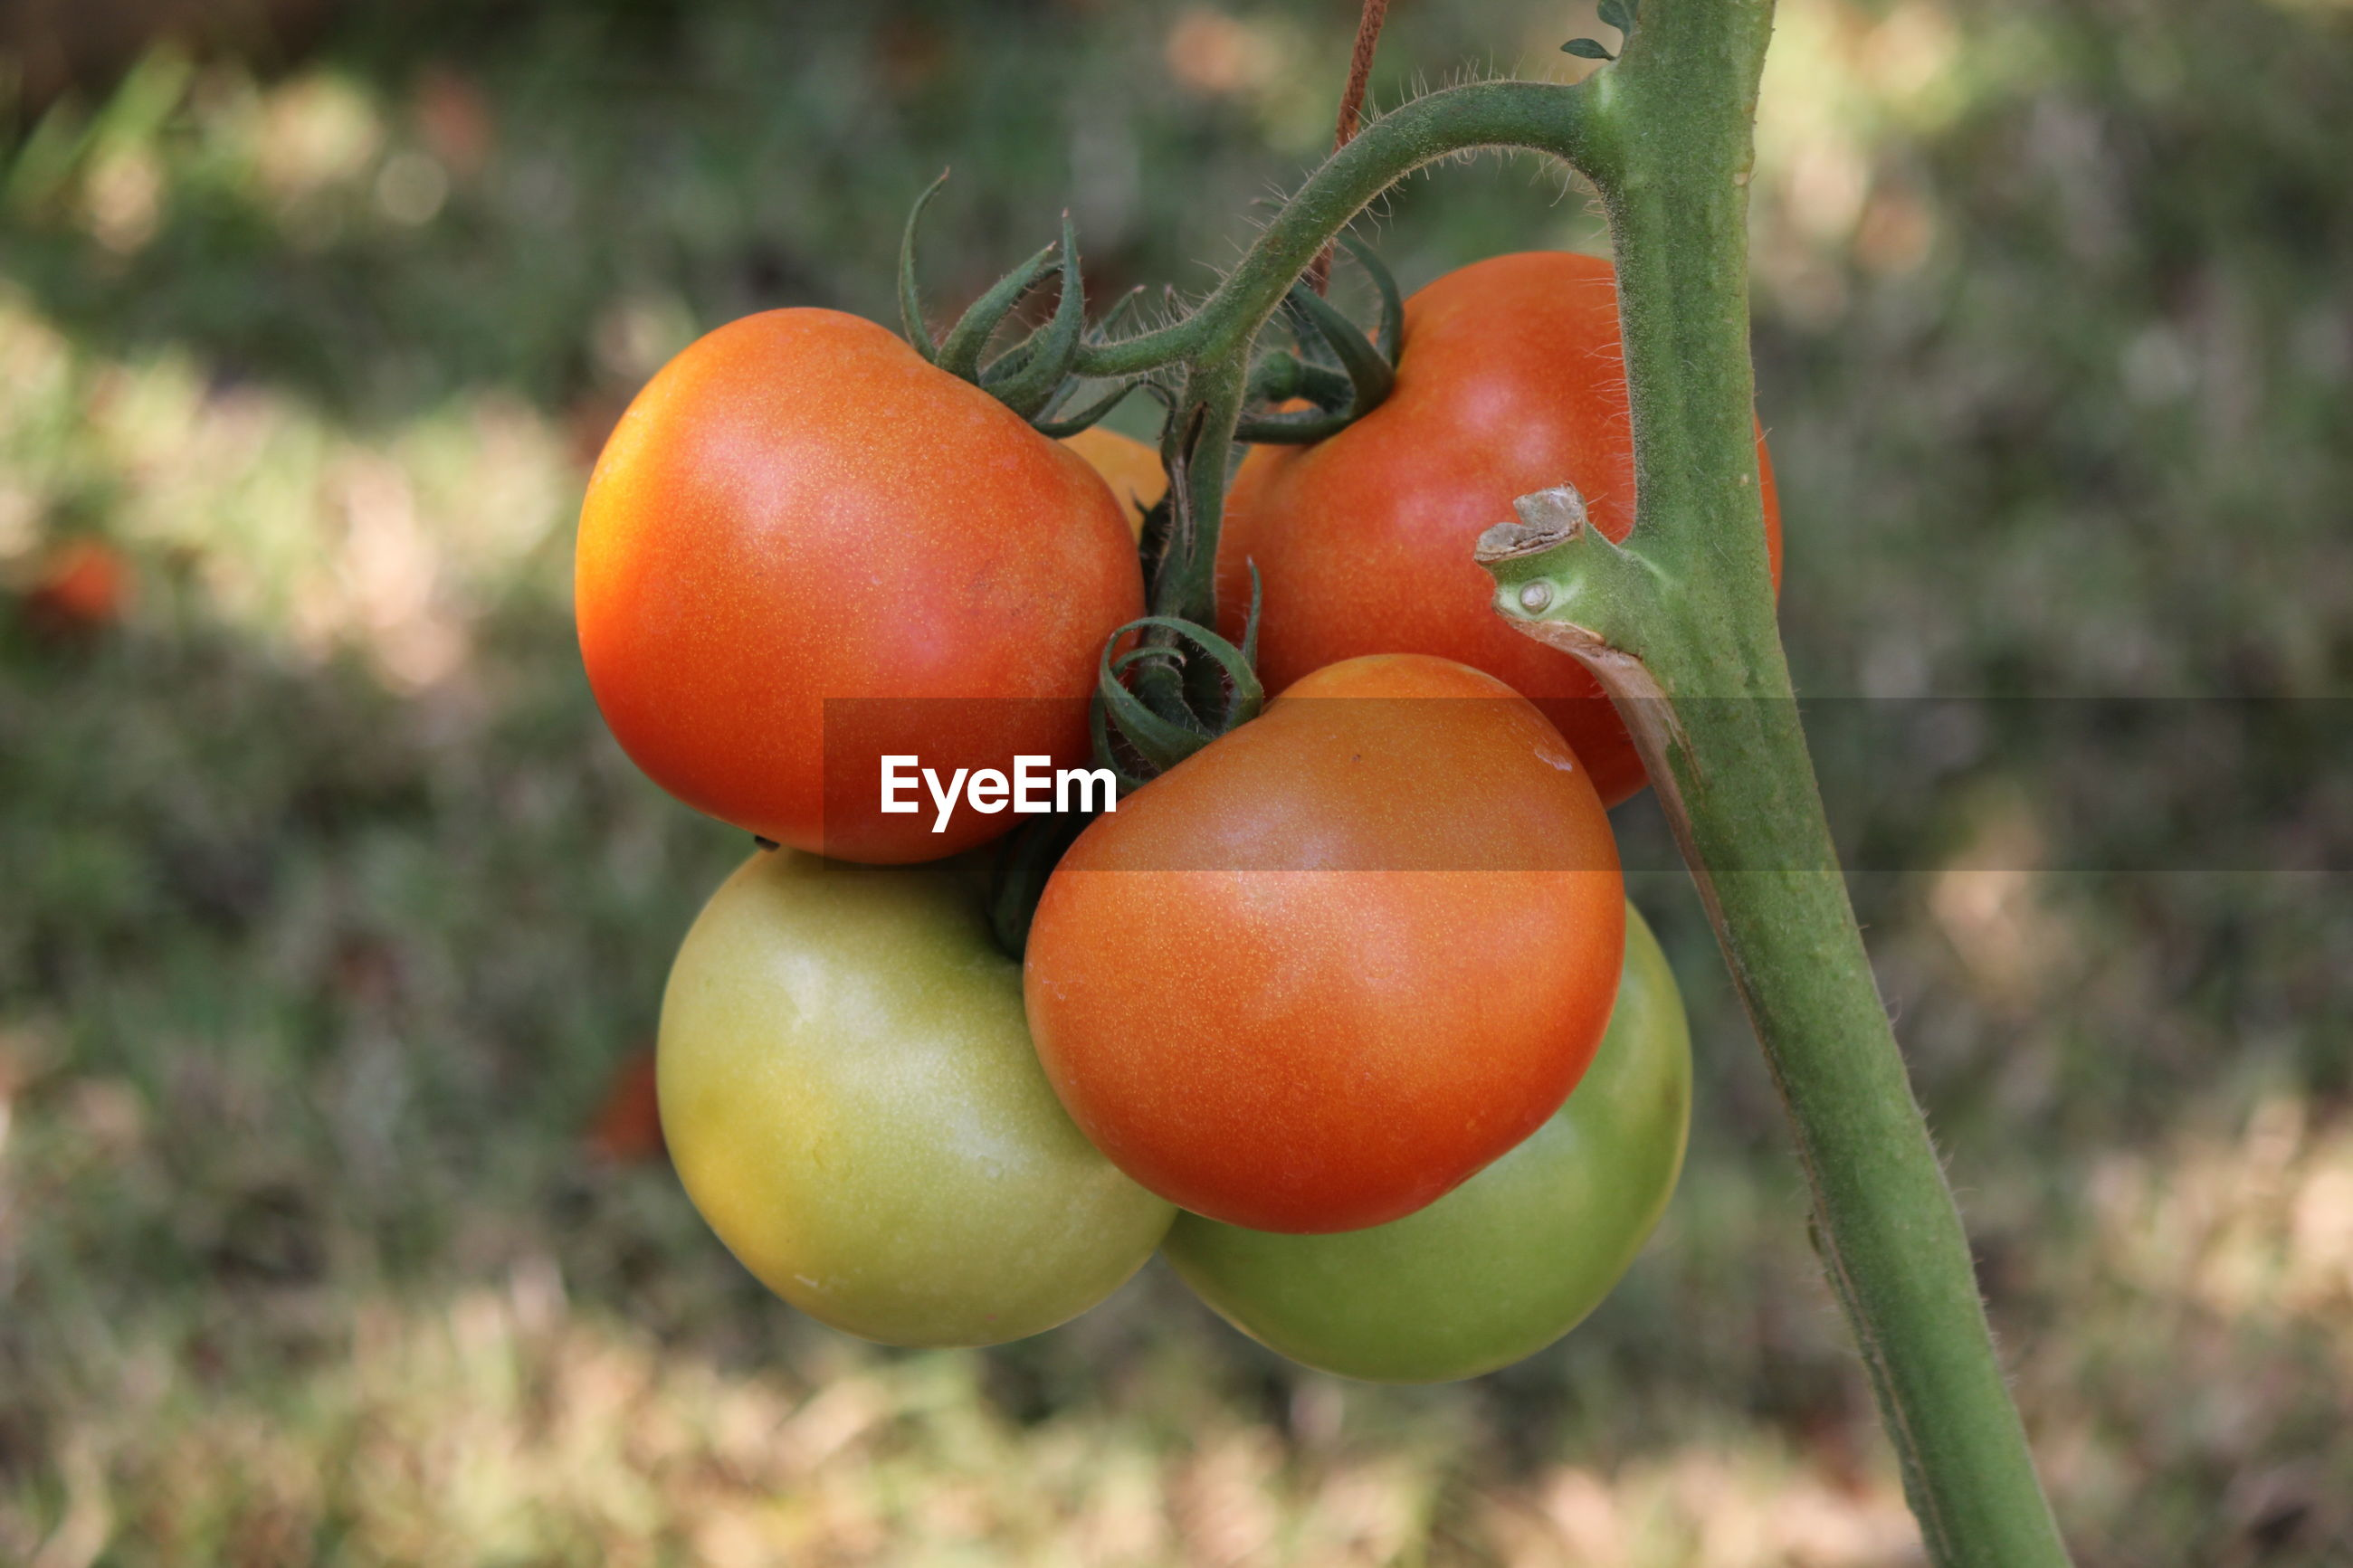 Close-up of tomatoes growing on plant